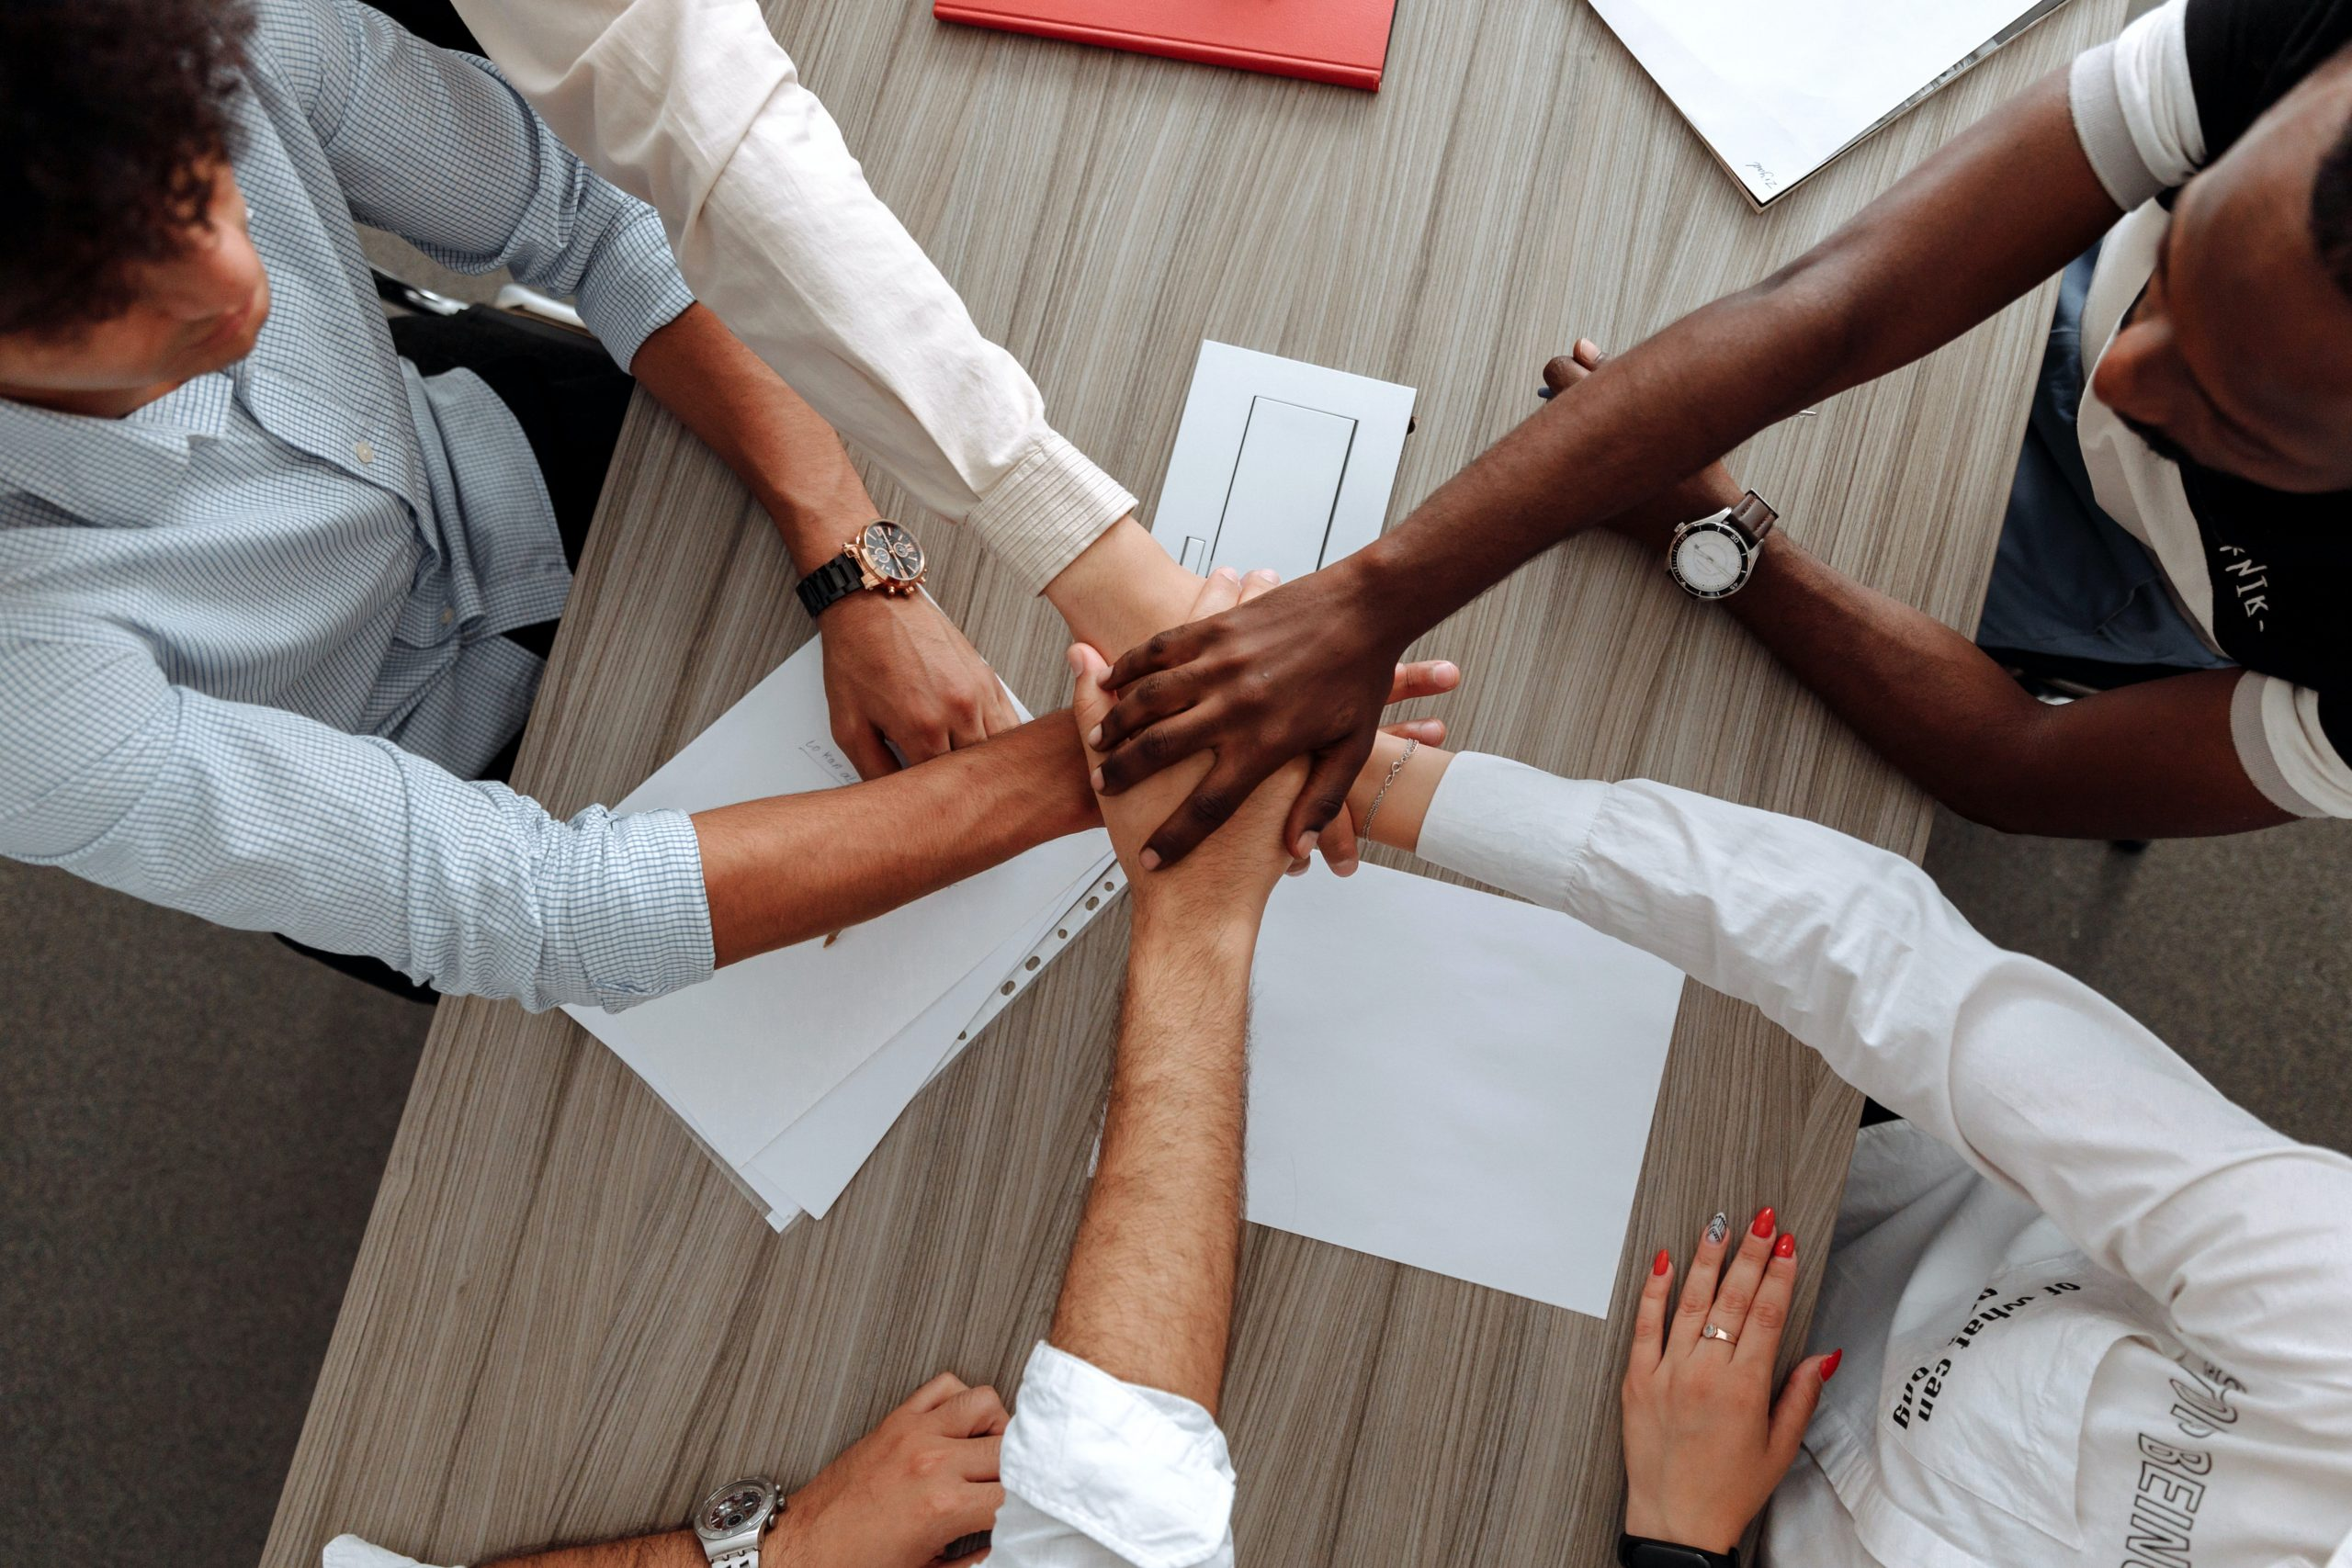 Volunteer hands in a huddle to win